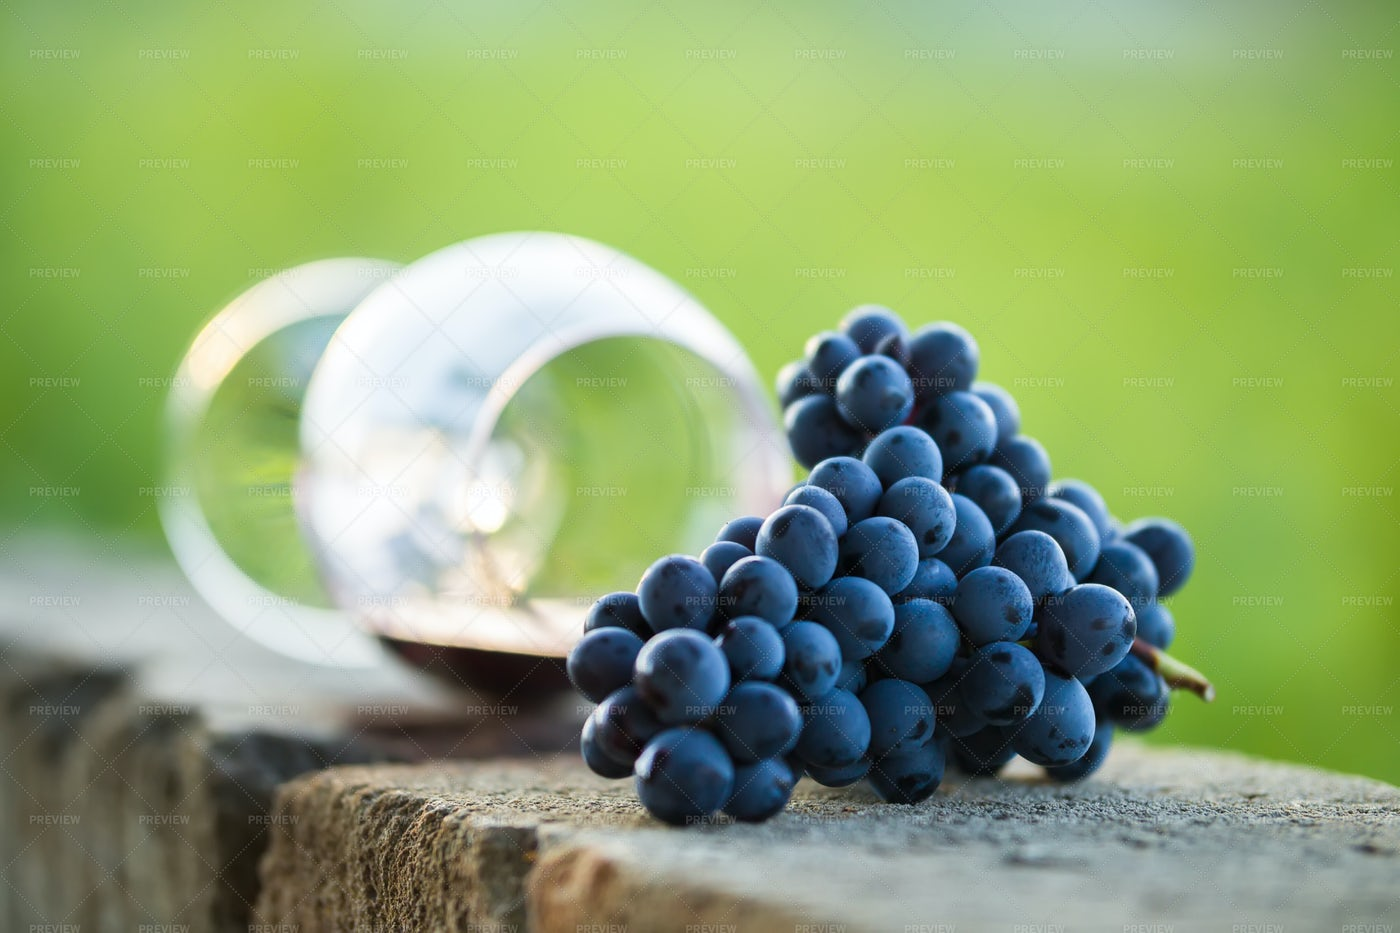 Glass Of Red Wine With Purple Grapes: Stock Photos